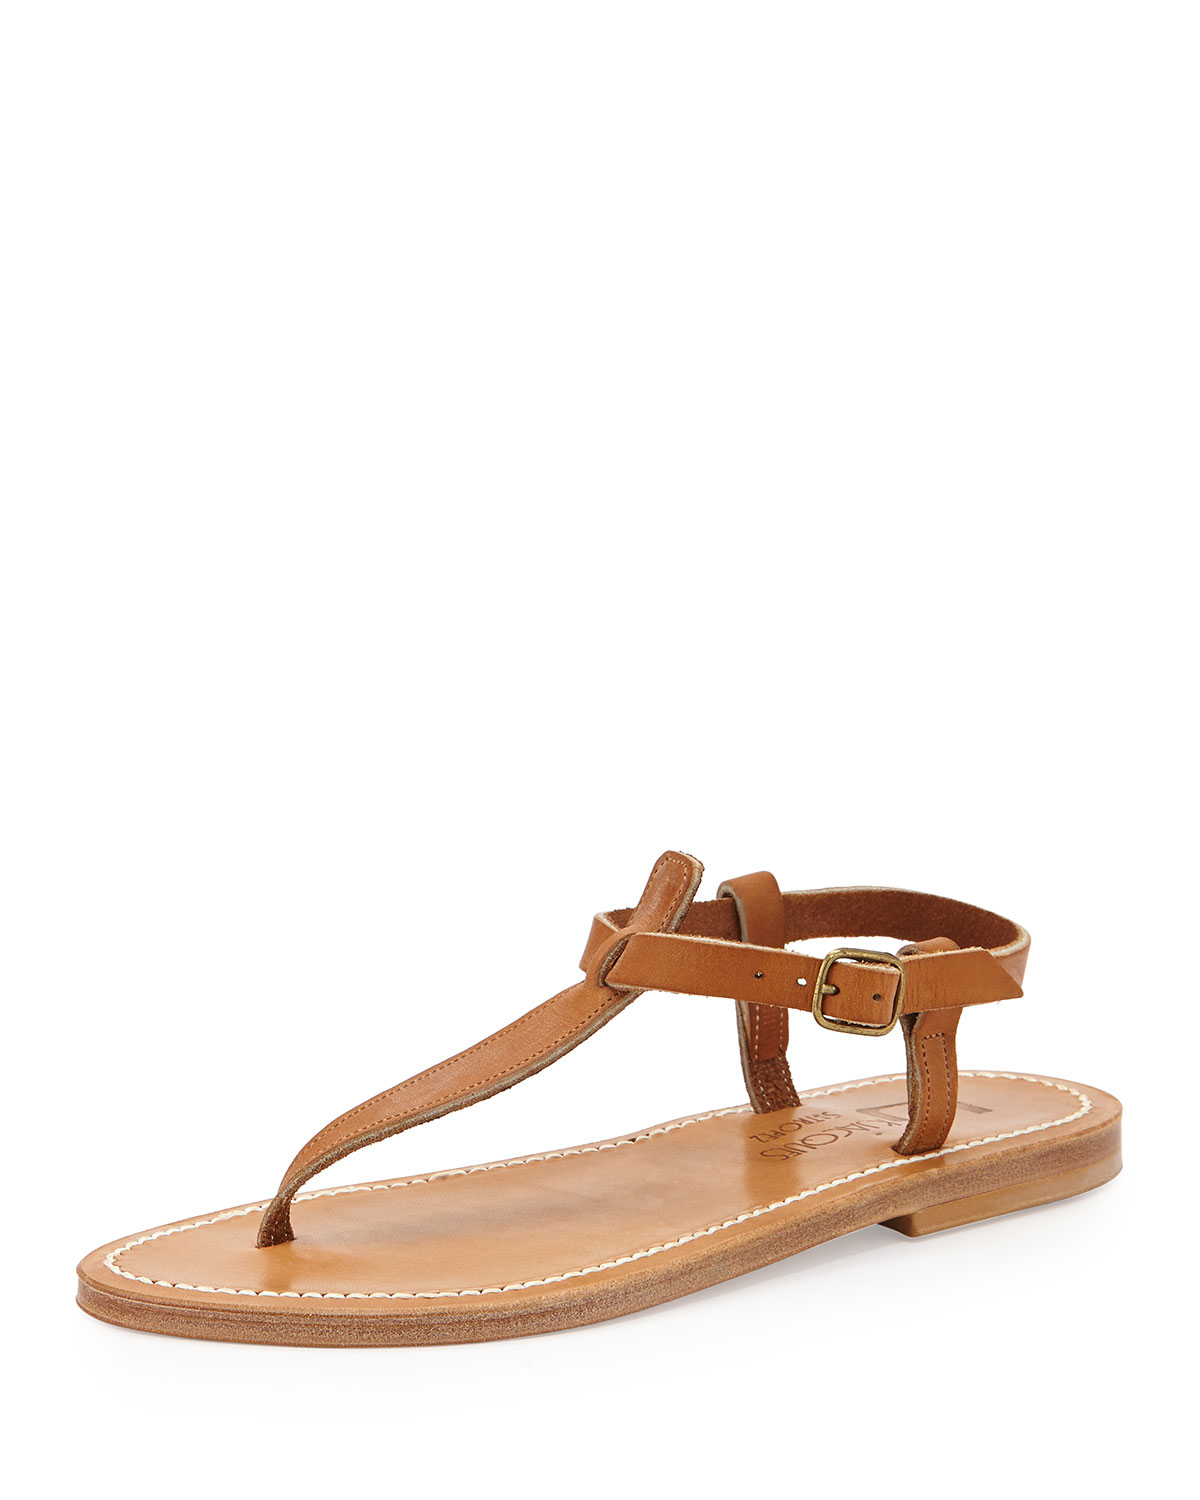 K Jacques Leather T Strap Flat Sandal In Brown Lyst